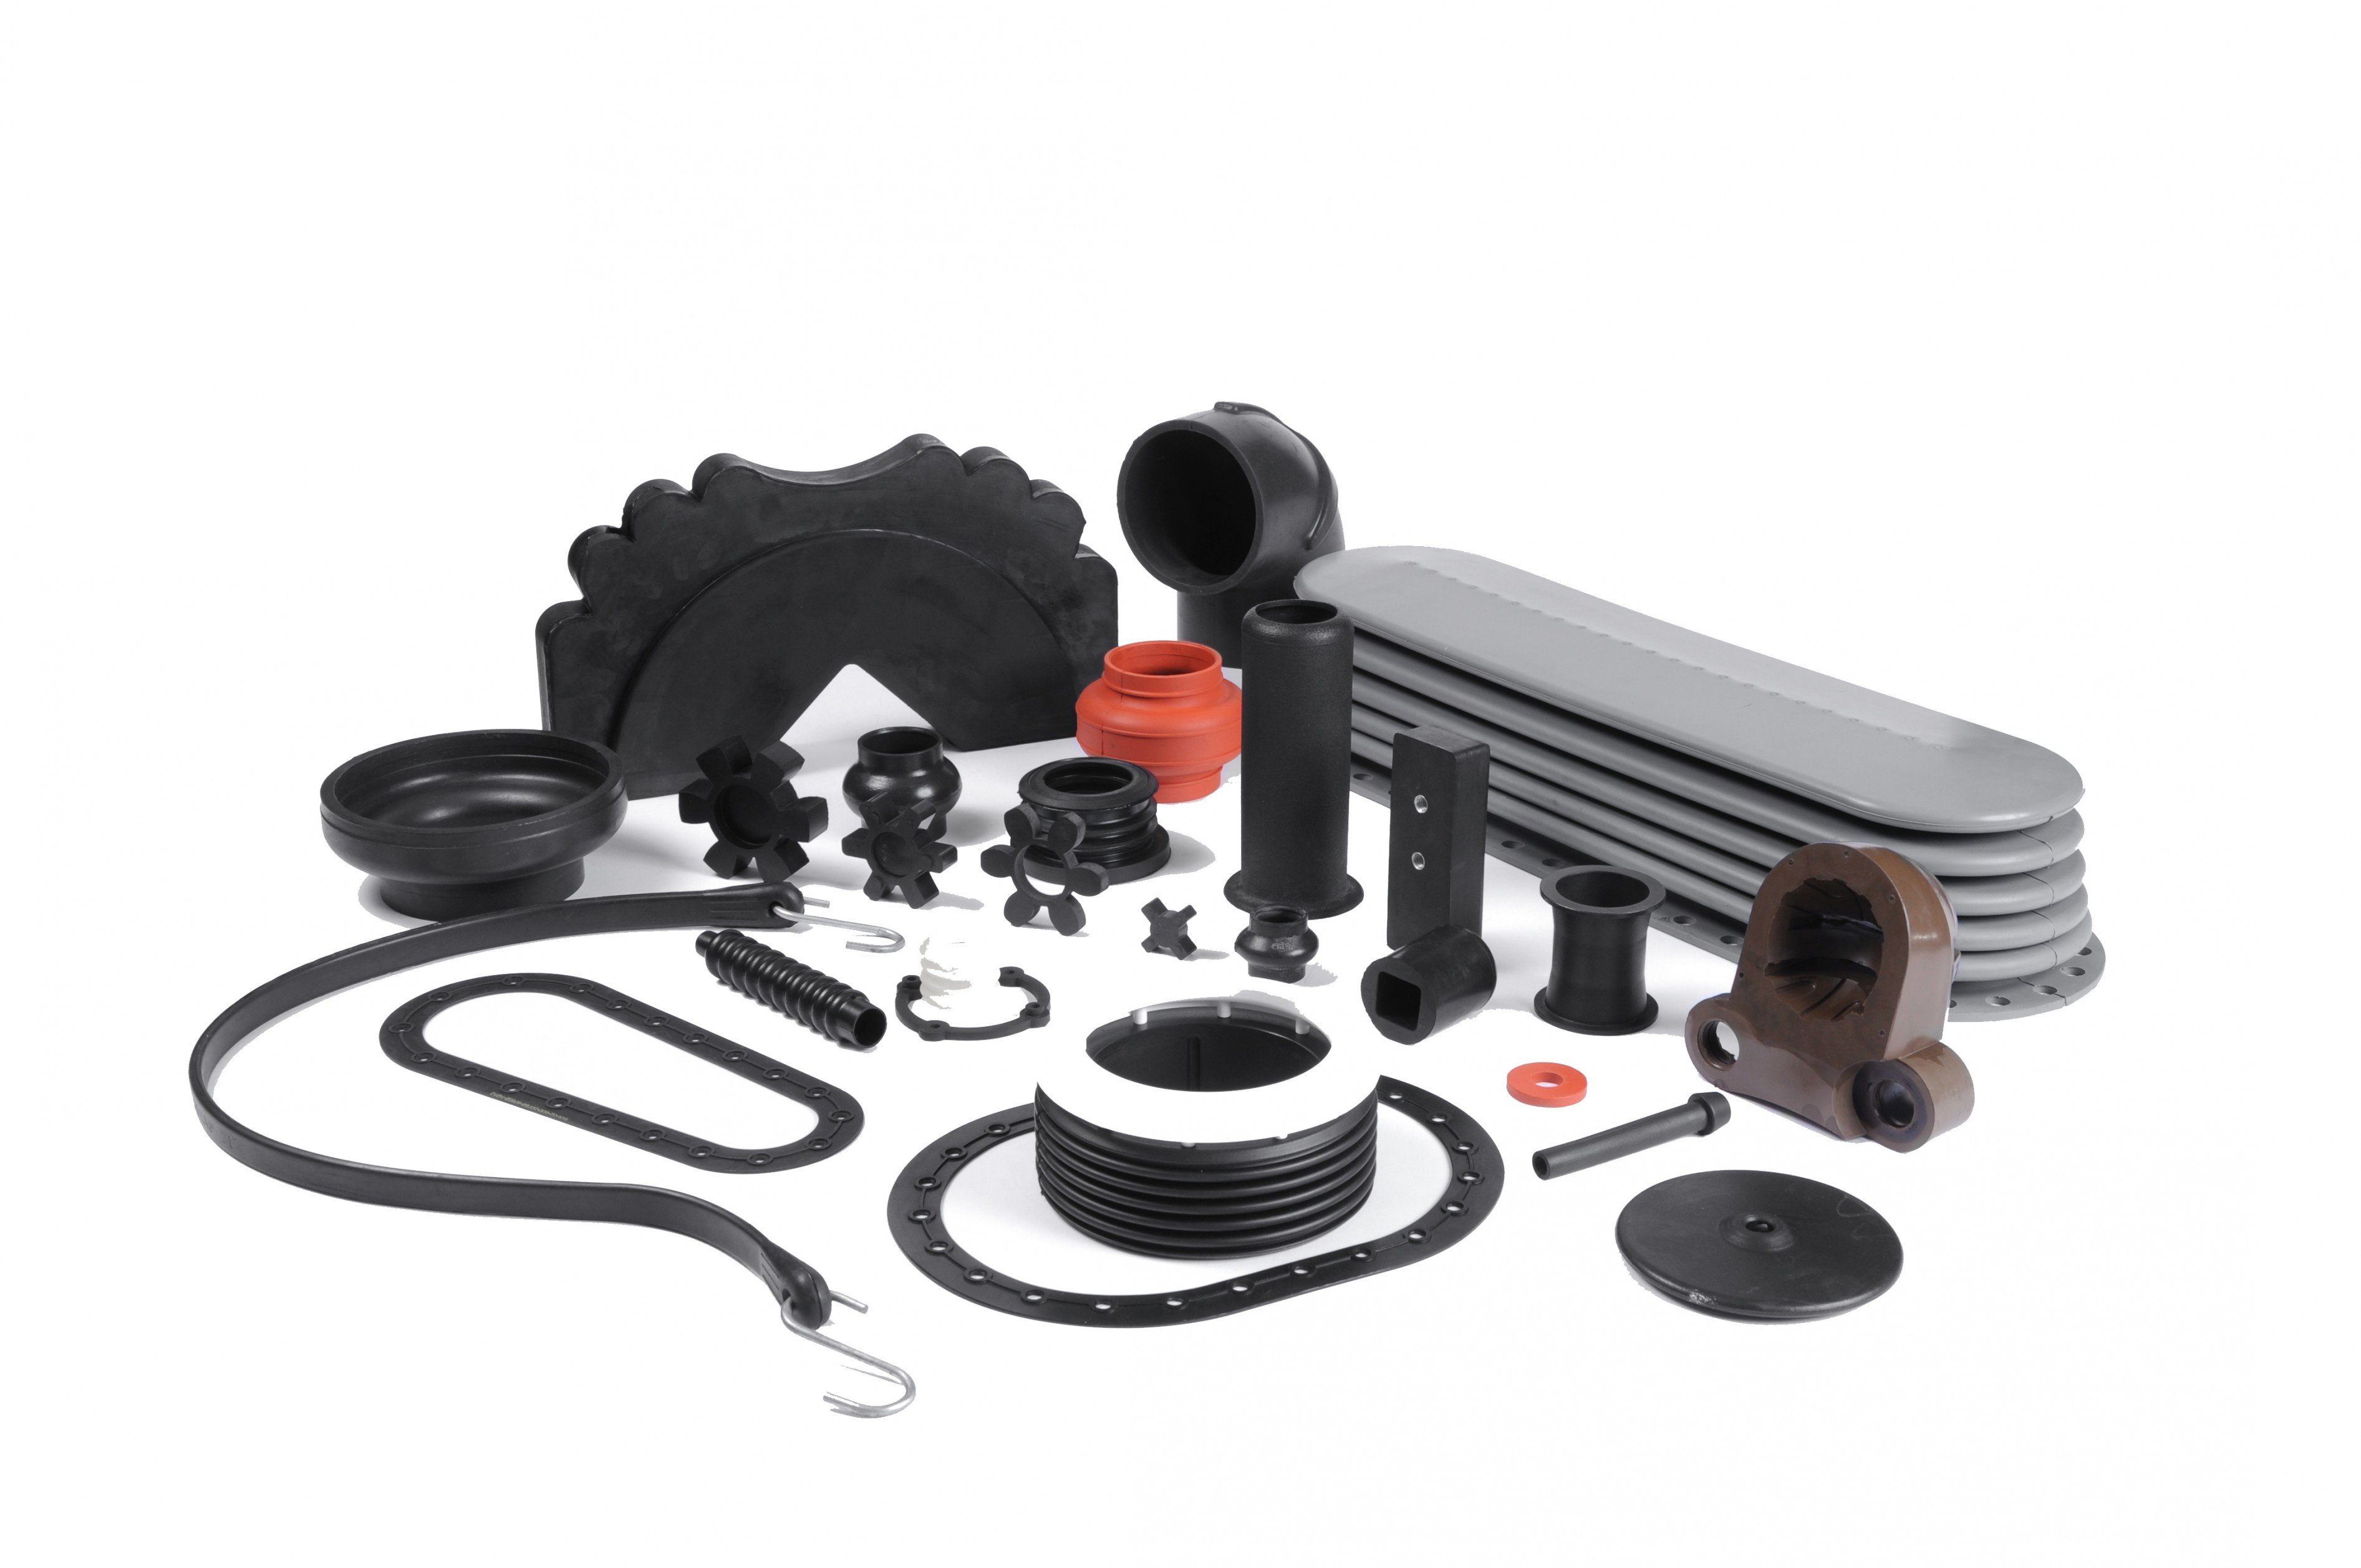 Multiple Molded Rubber Examples